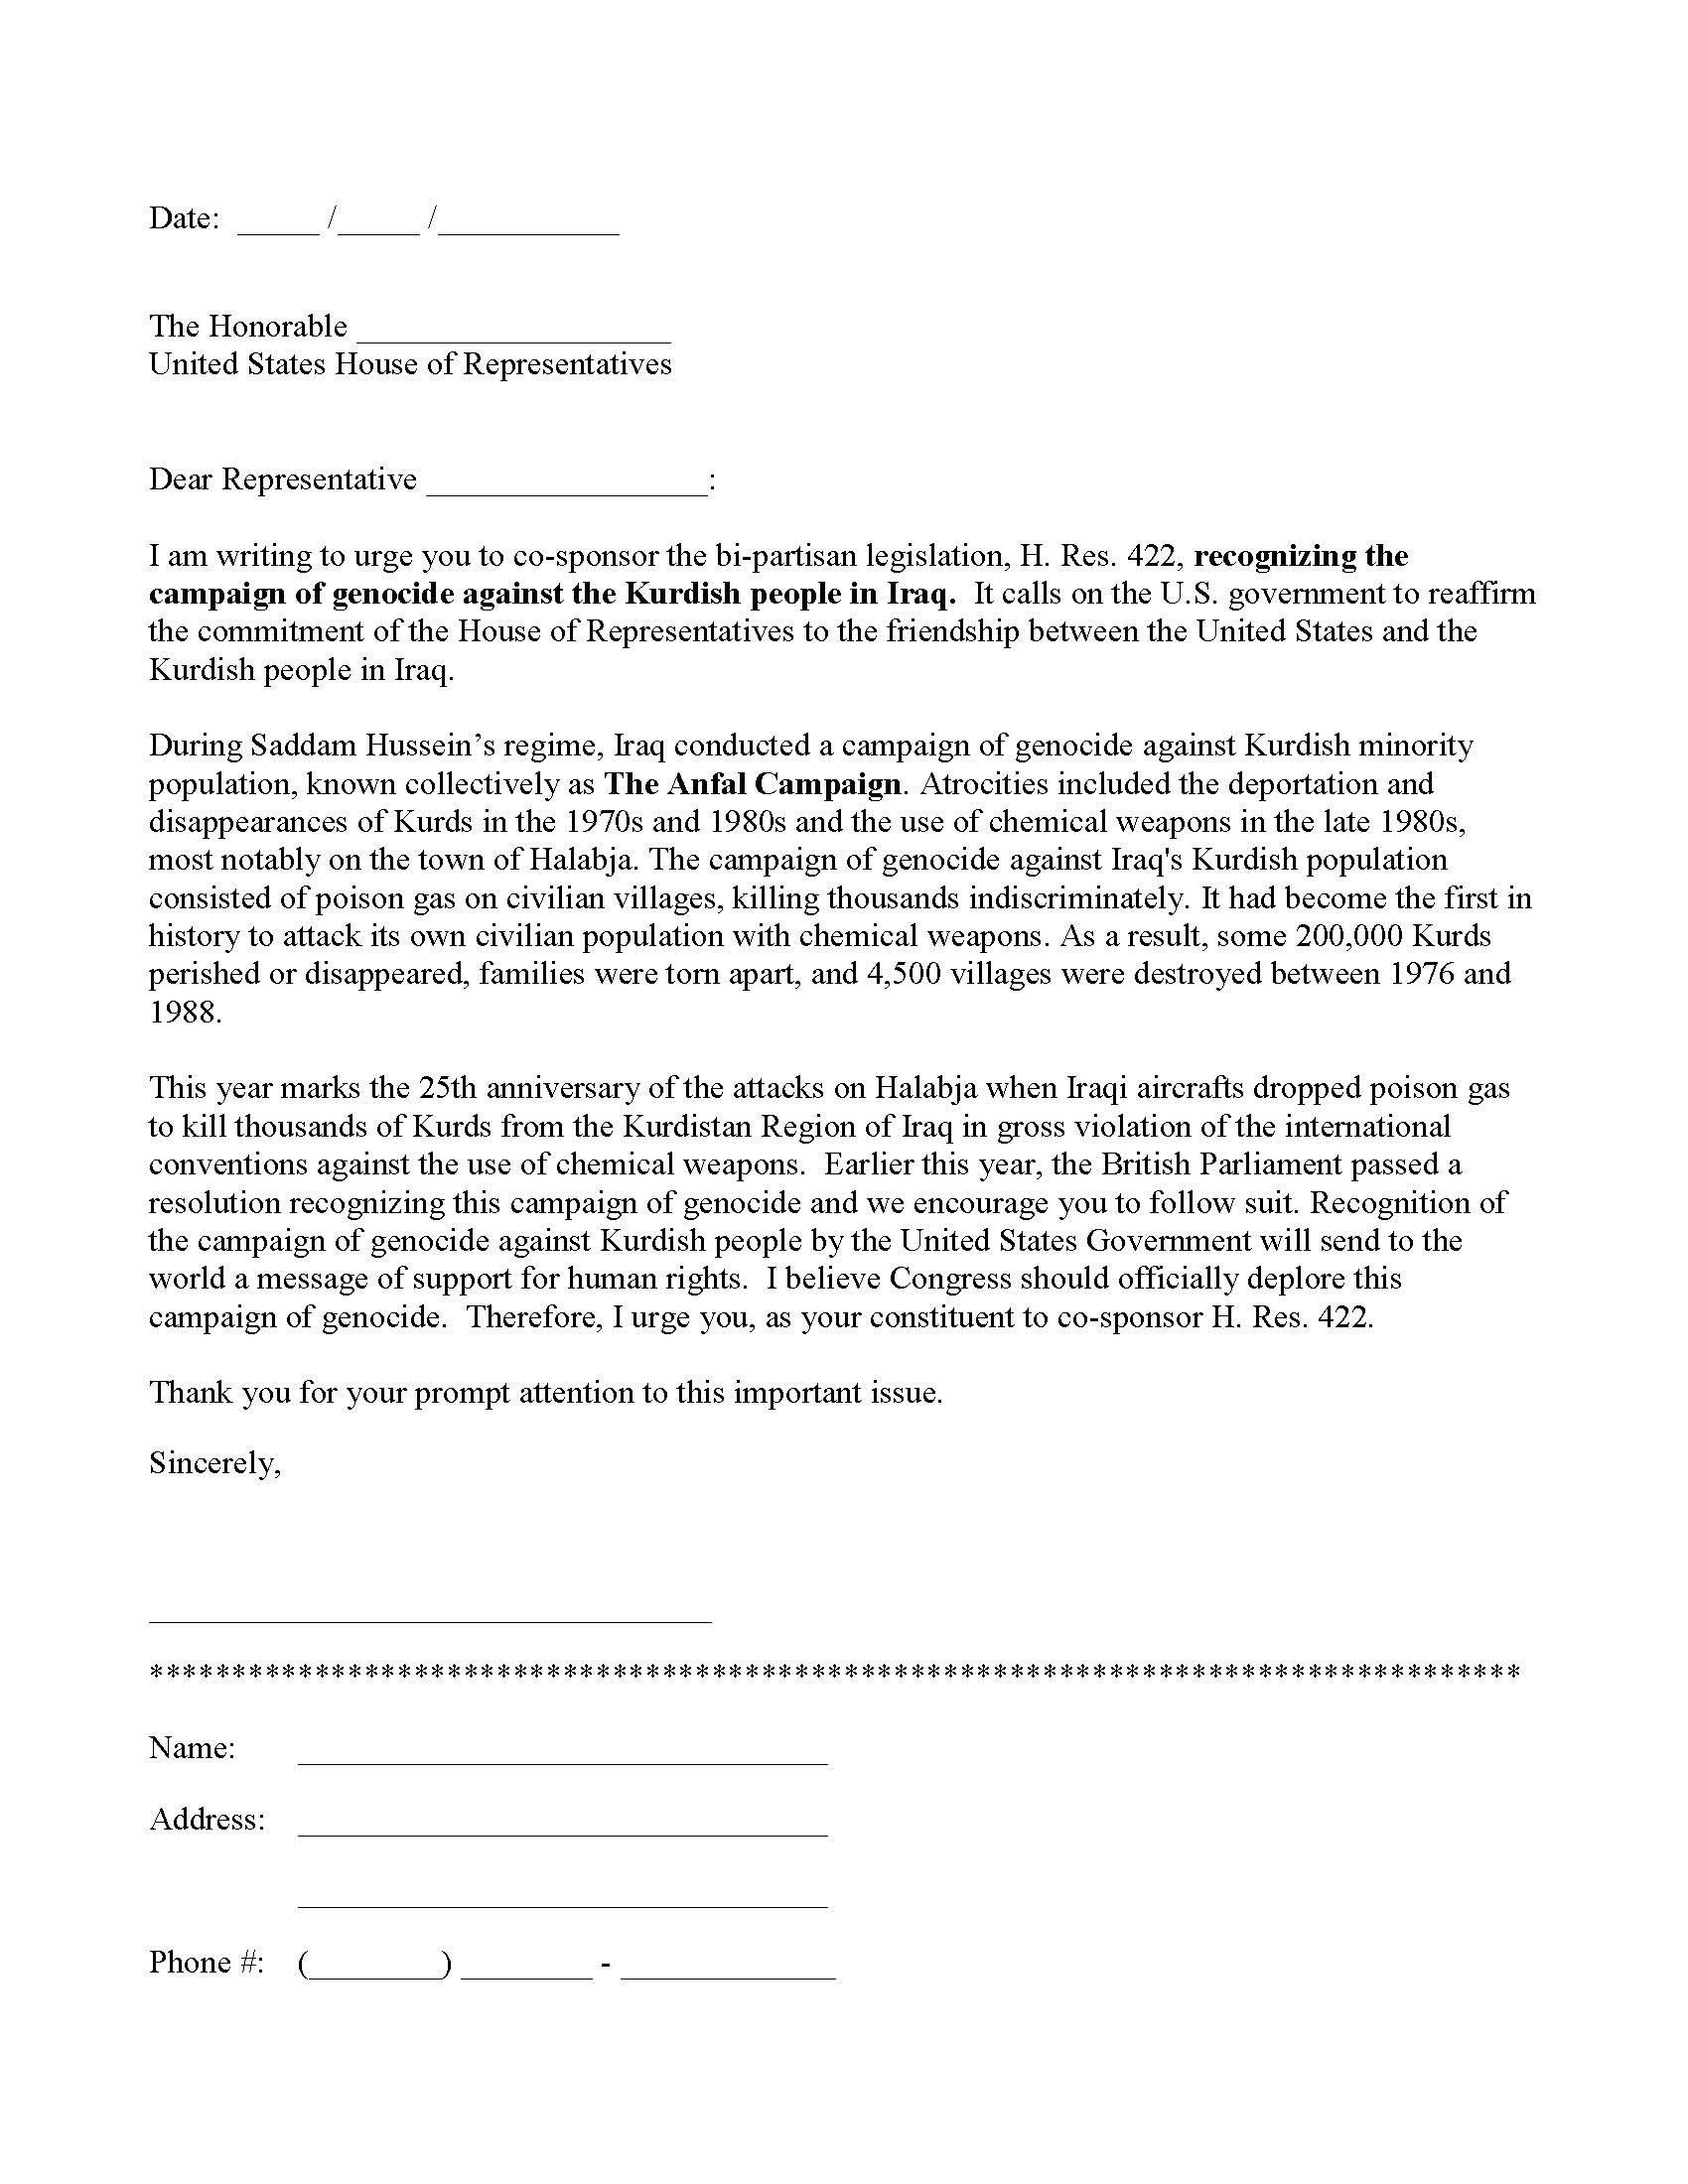 Letter To Congressman Template Samples  Letter Template Collection Pertaining To Letter To Congressman Template